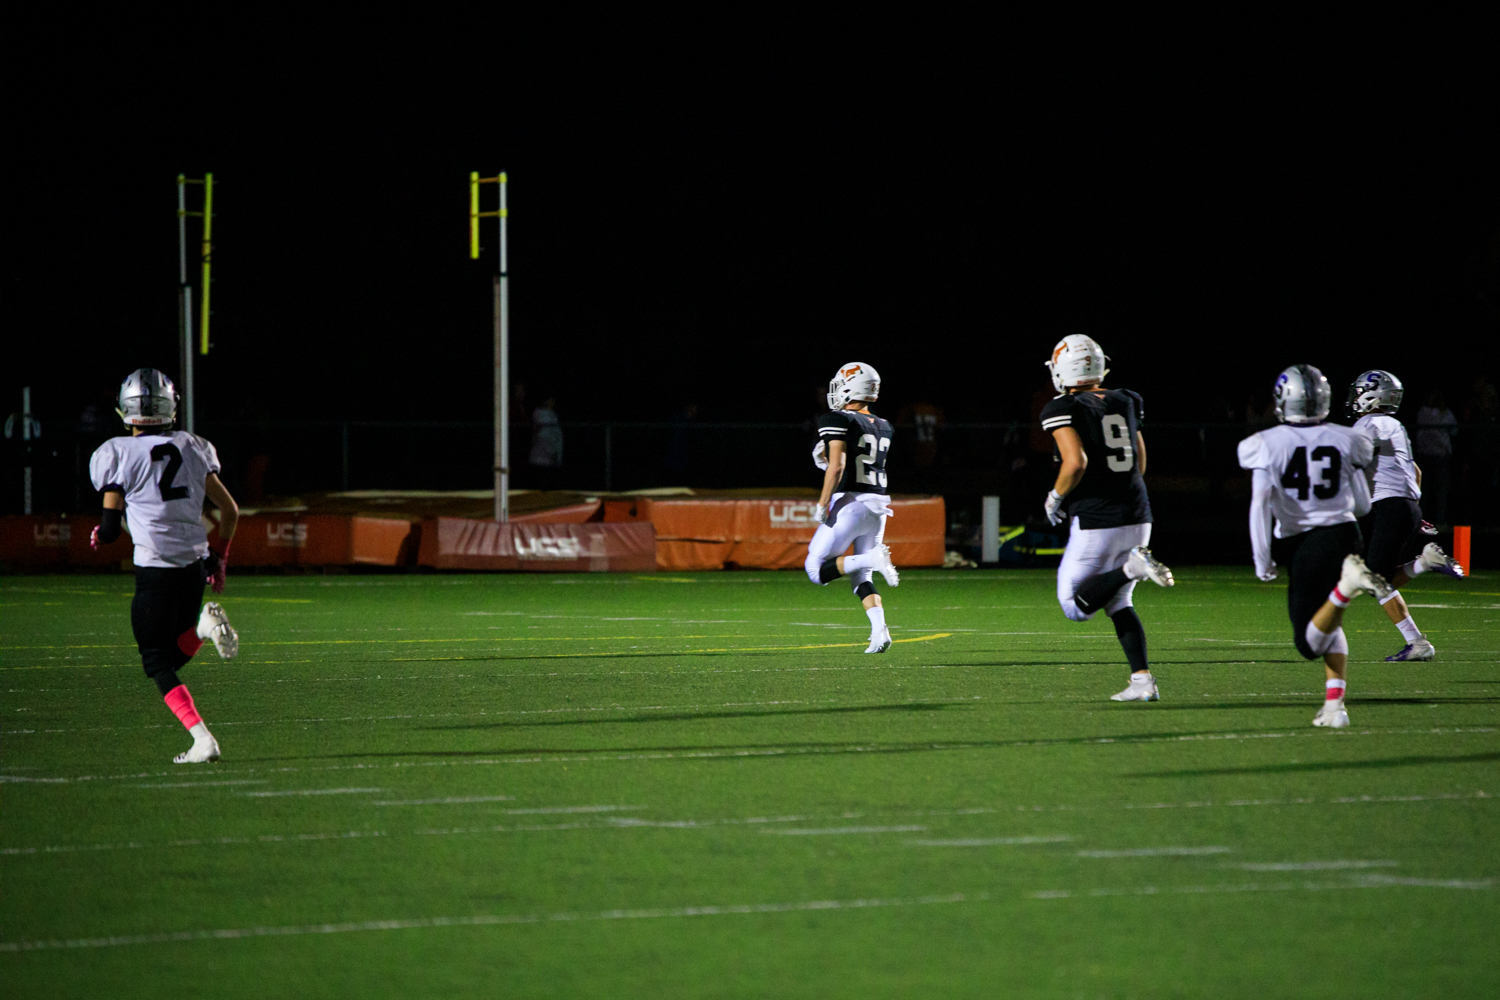 Wachter+takes+that+run+all+the+way+to+the+endzone+for+his+second+touchdown+of+the+night%2C+placing+Mead+up+30-0+after+the+PAT.